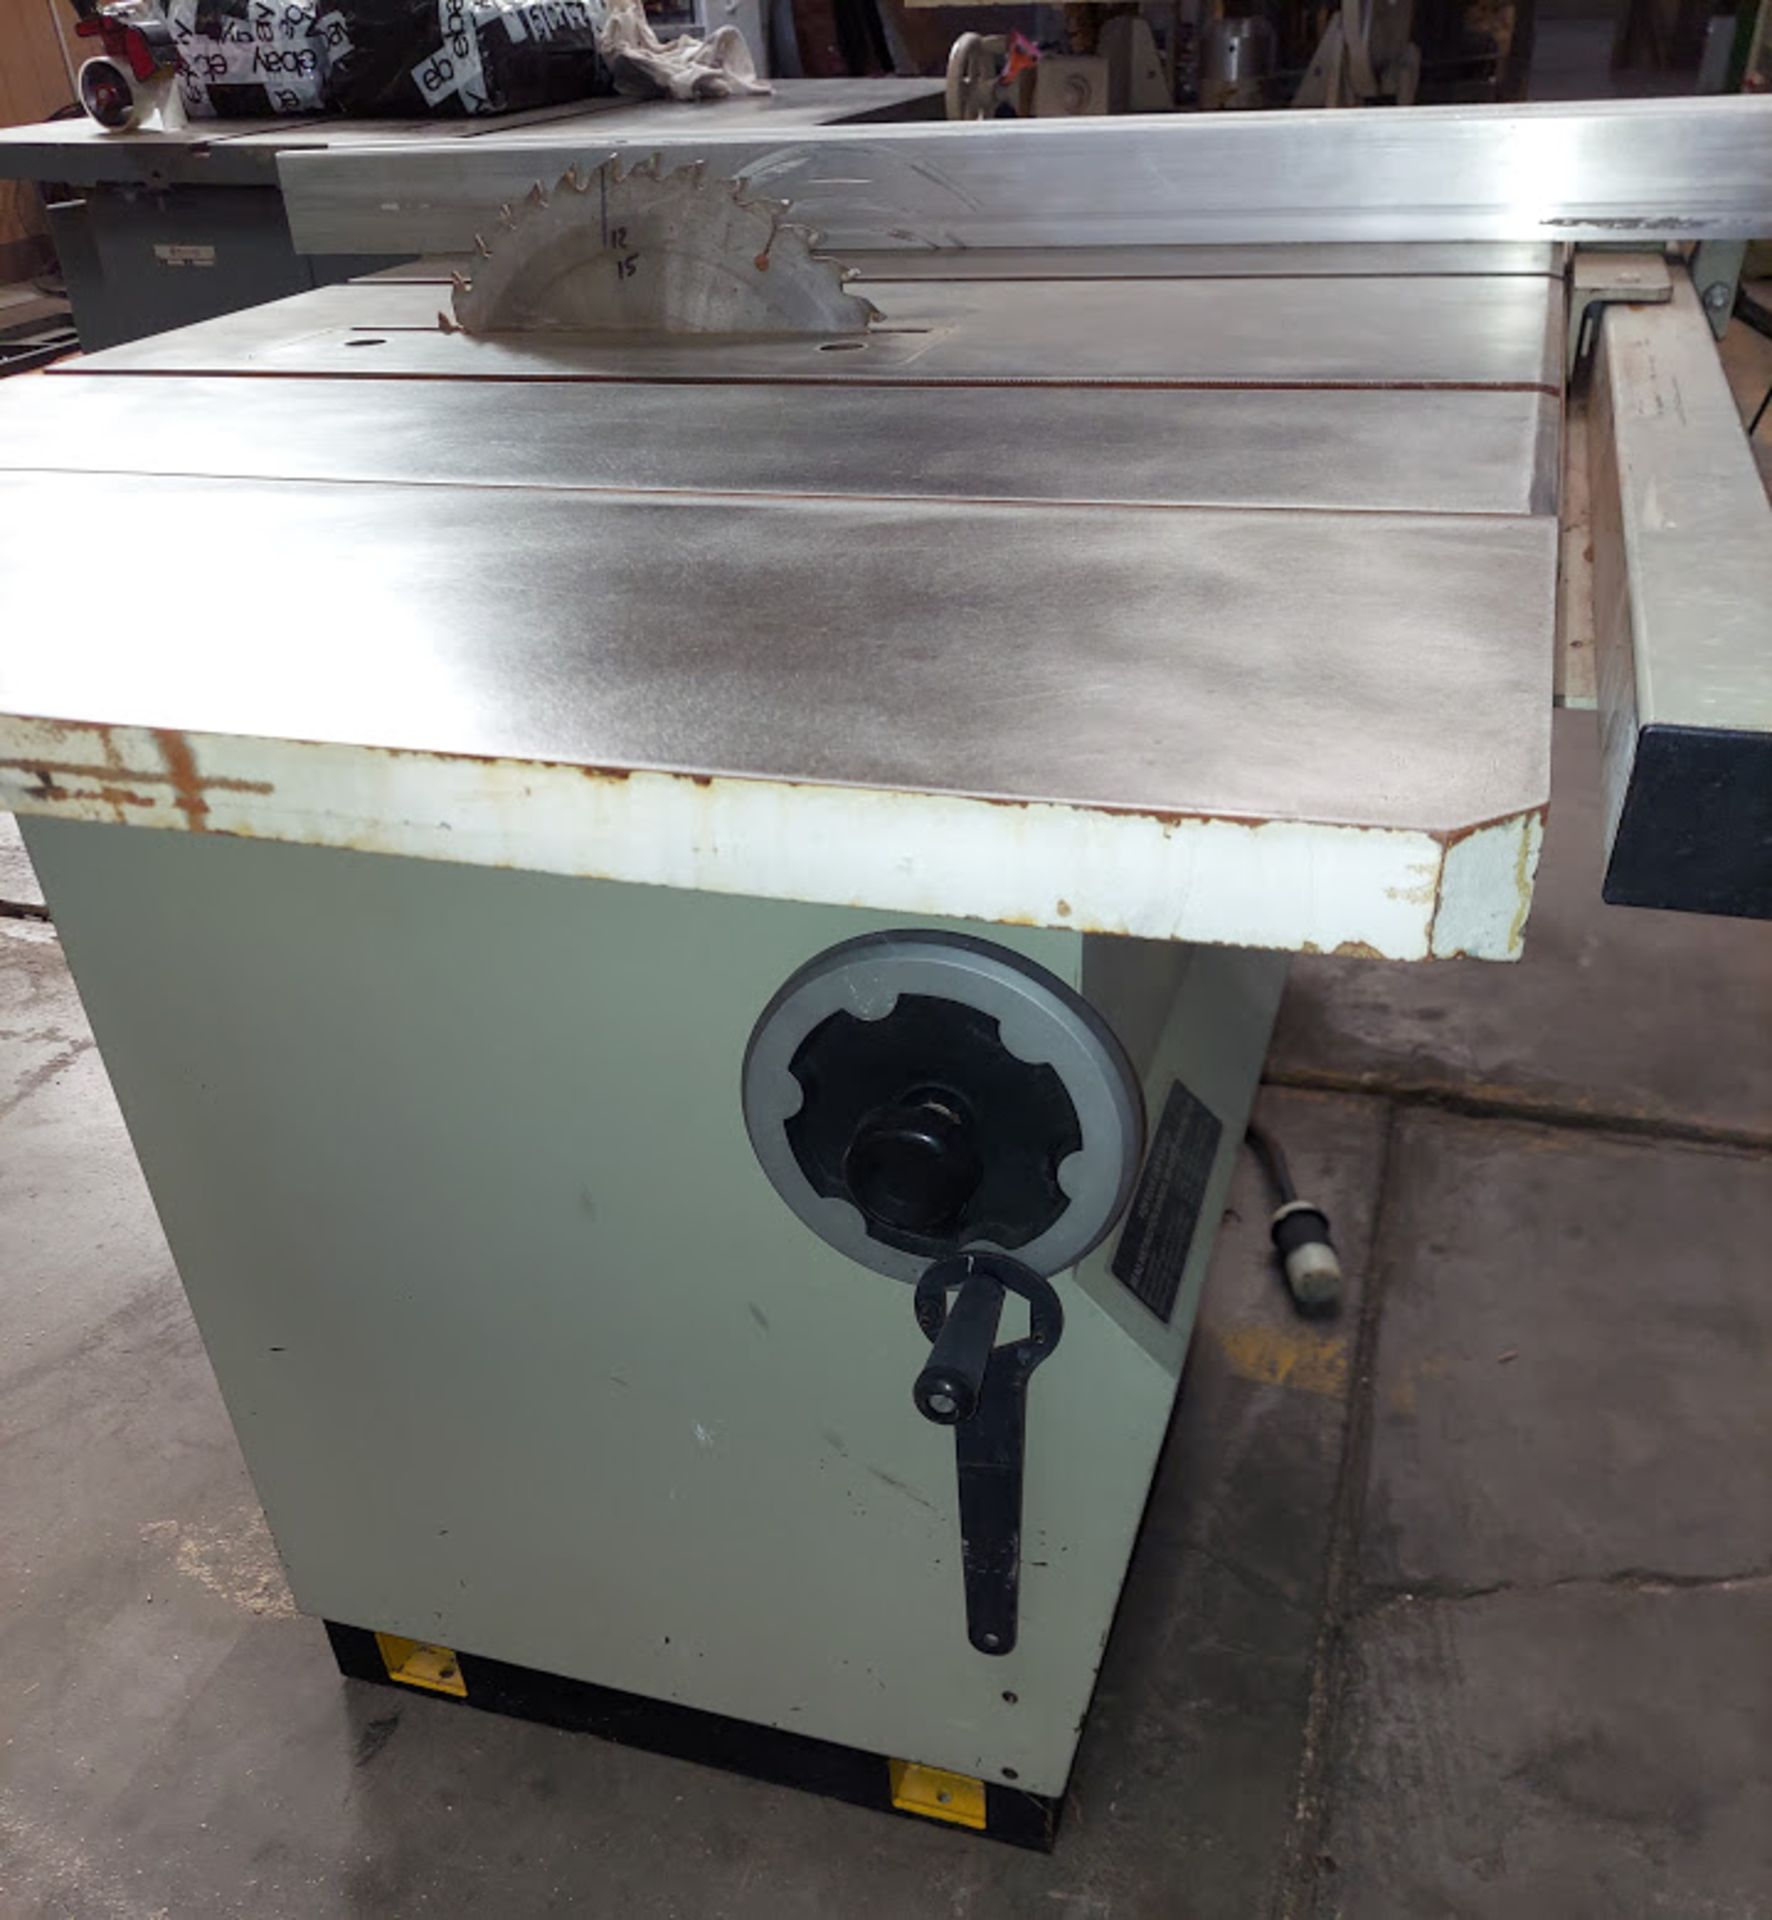 "Lobo 12"" Table Saw, Model #1212, 5 HP 220/440 Volts 3 Phase, 39"" Rails & Fence - Image 3 of 4"